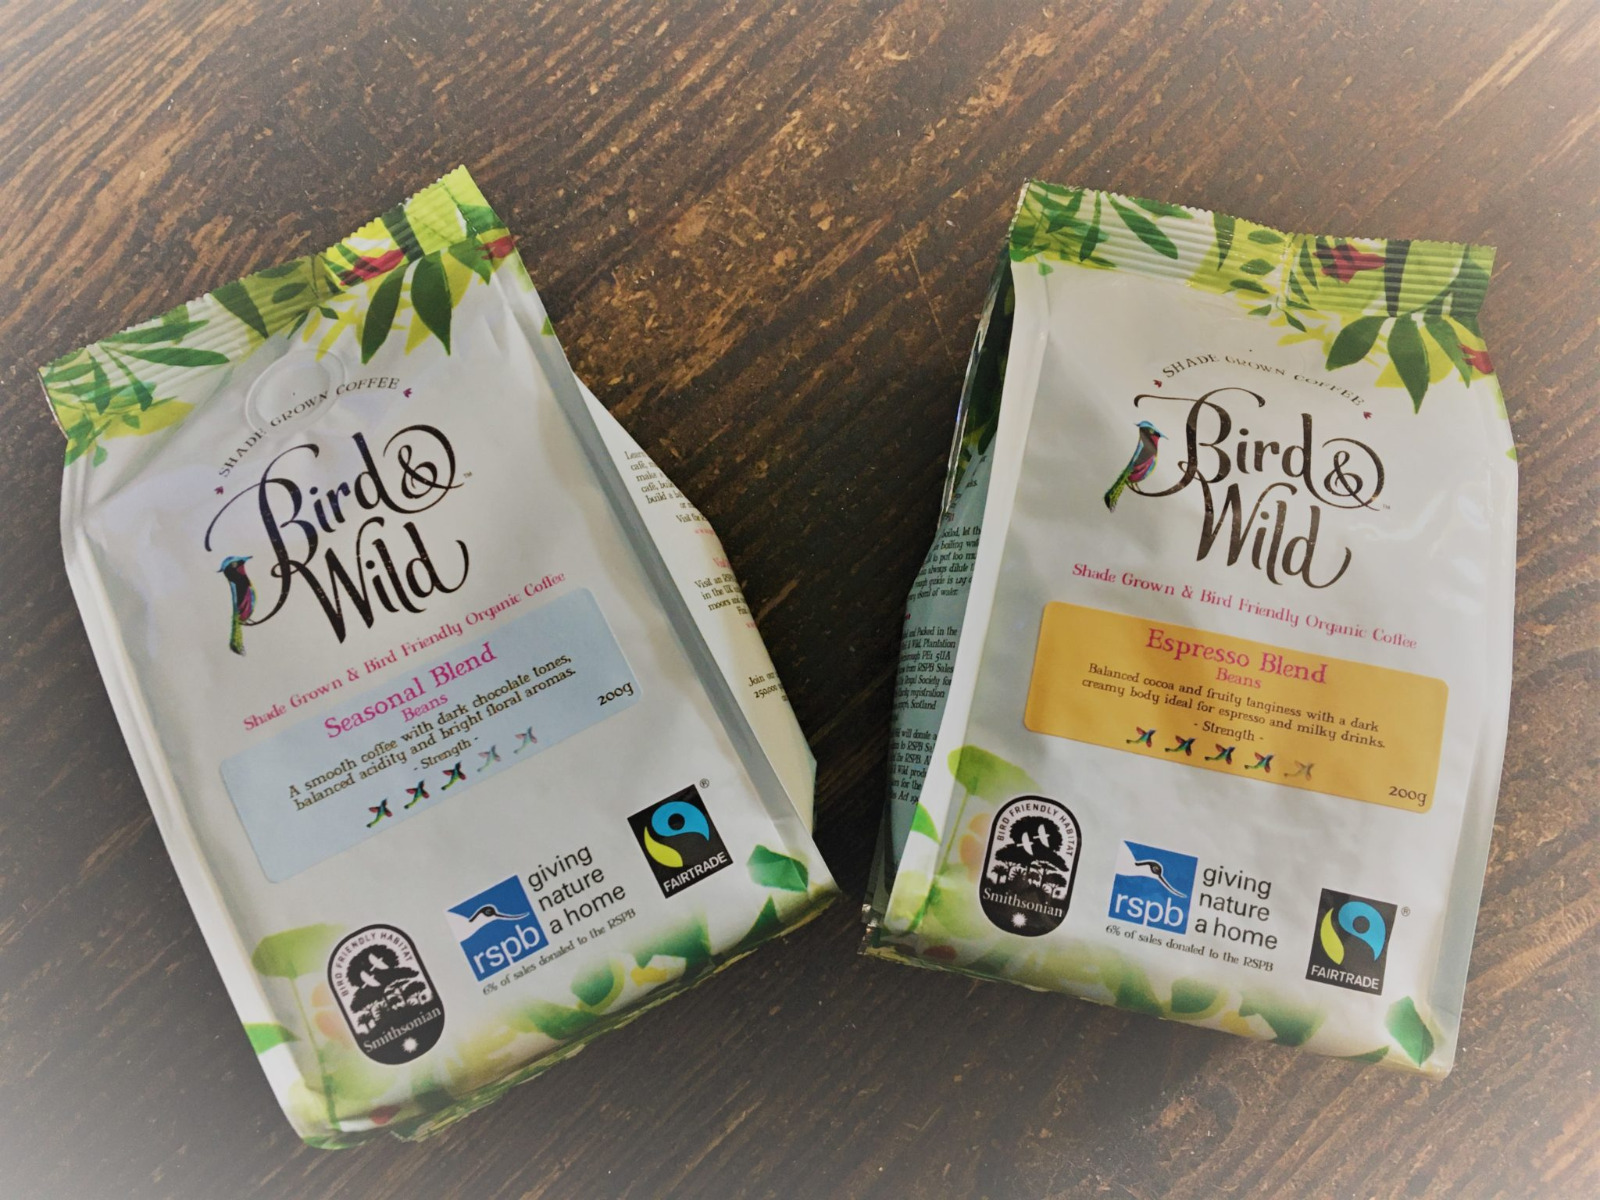 Bird & Wild Coffee (and why we are wild for it!)